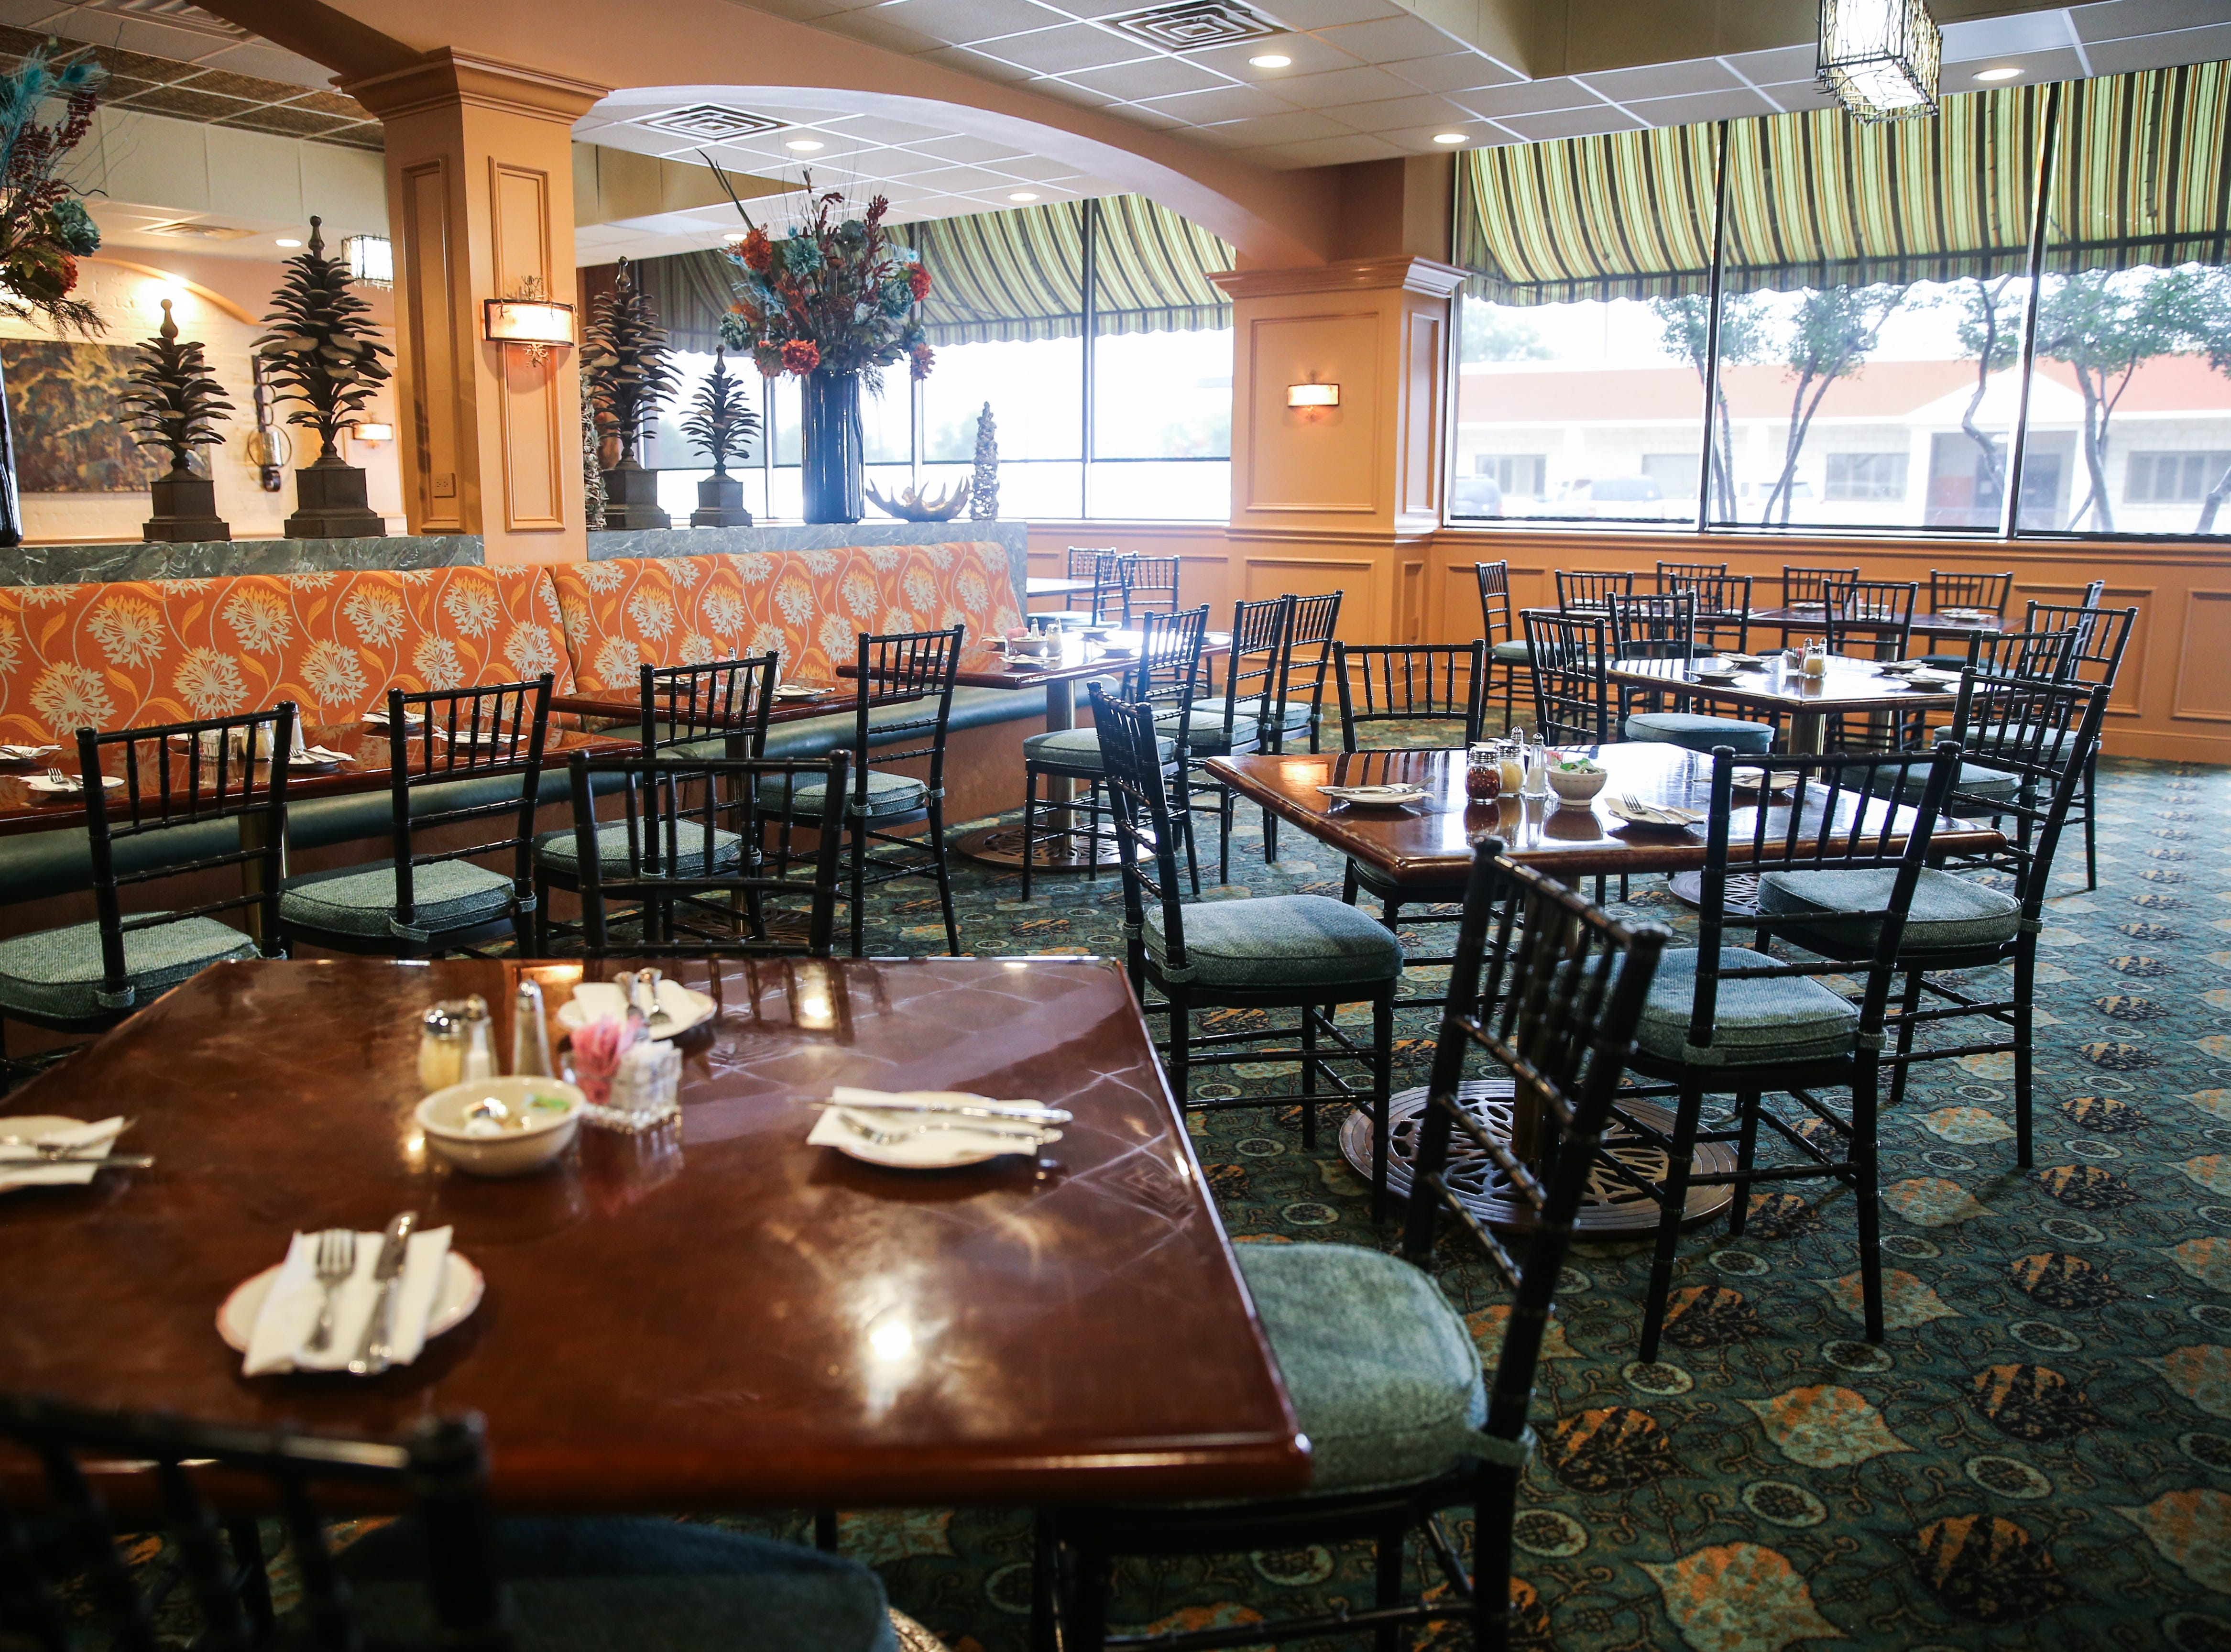 Napoli's Italian Restaurant opened at 421 S. Chadbourne St. in San Angelo.